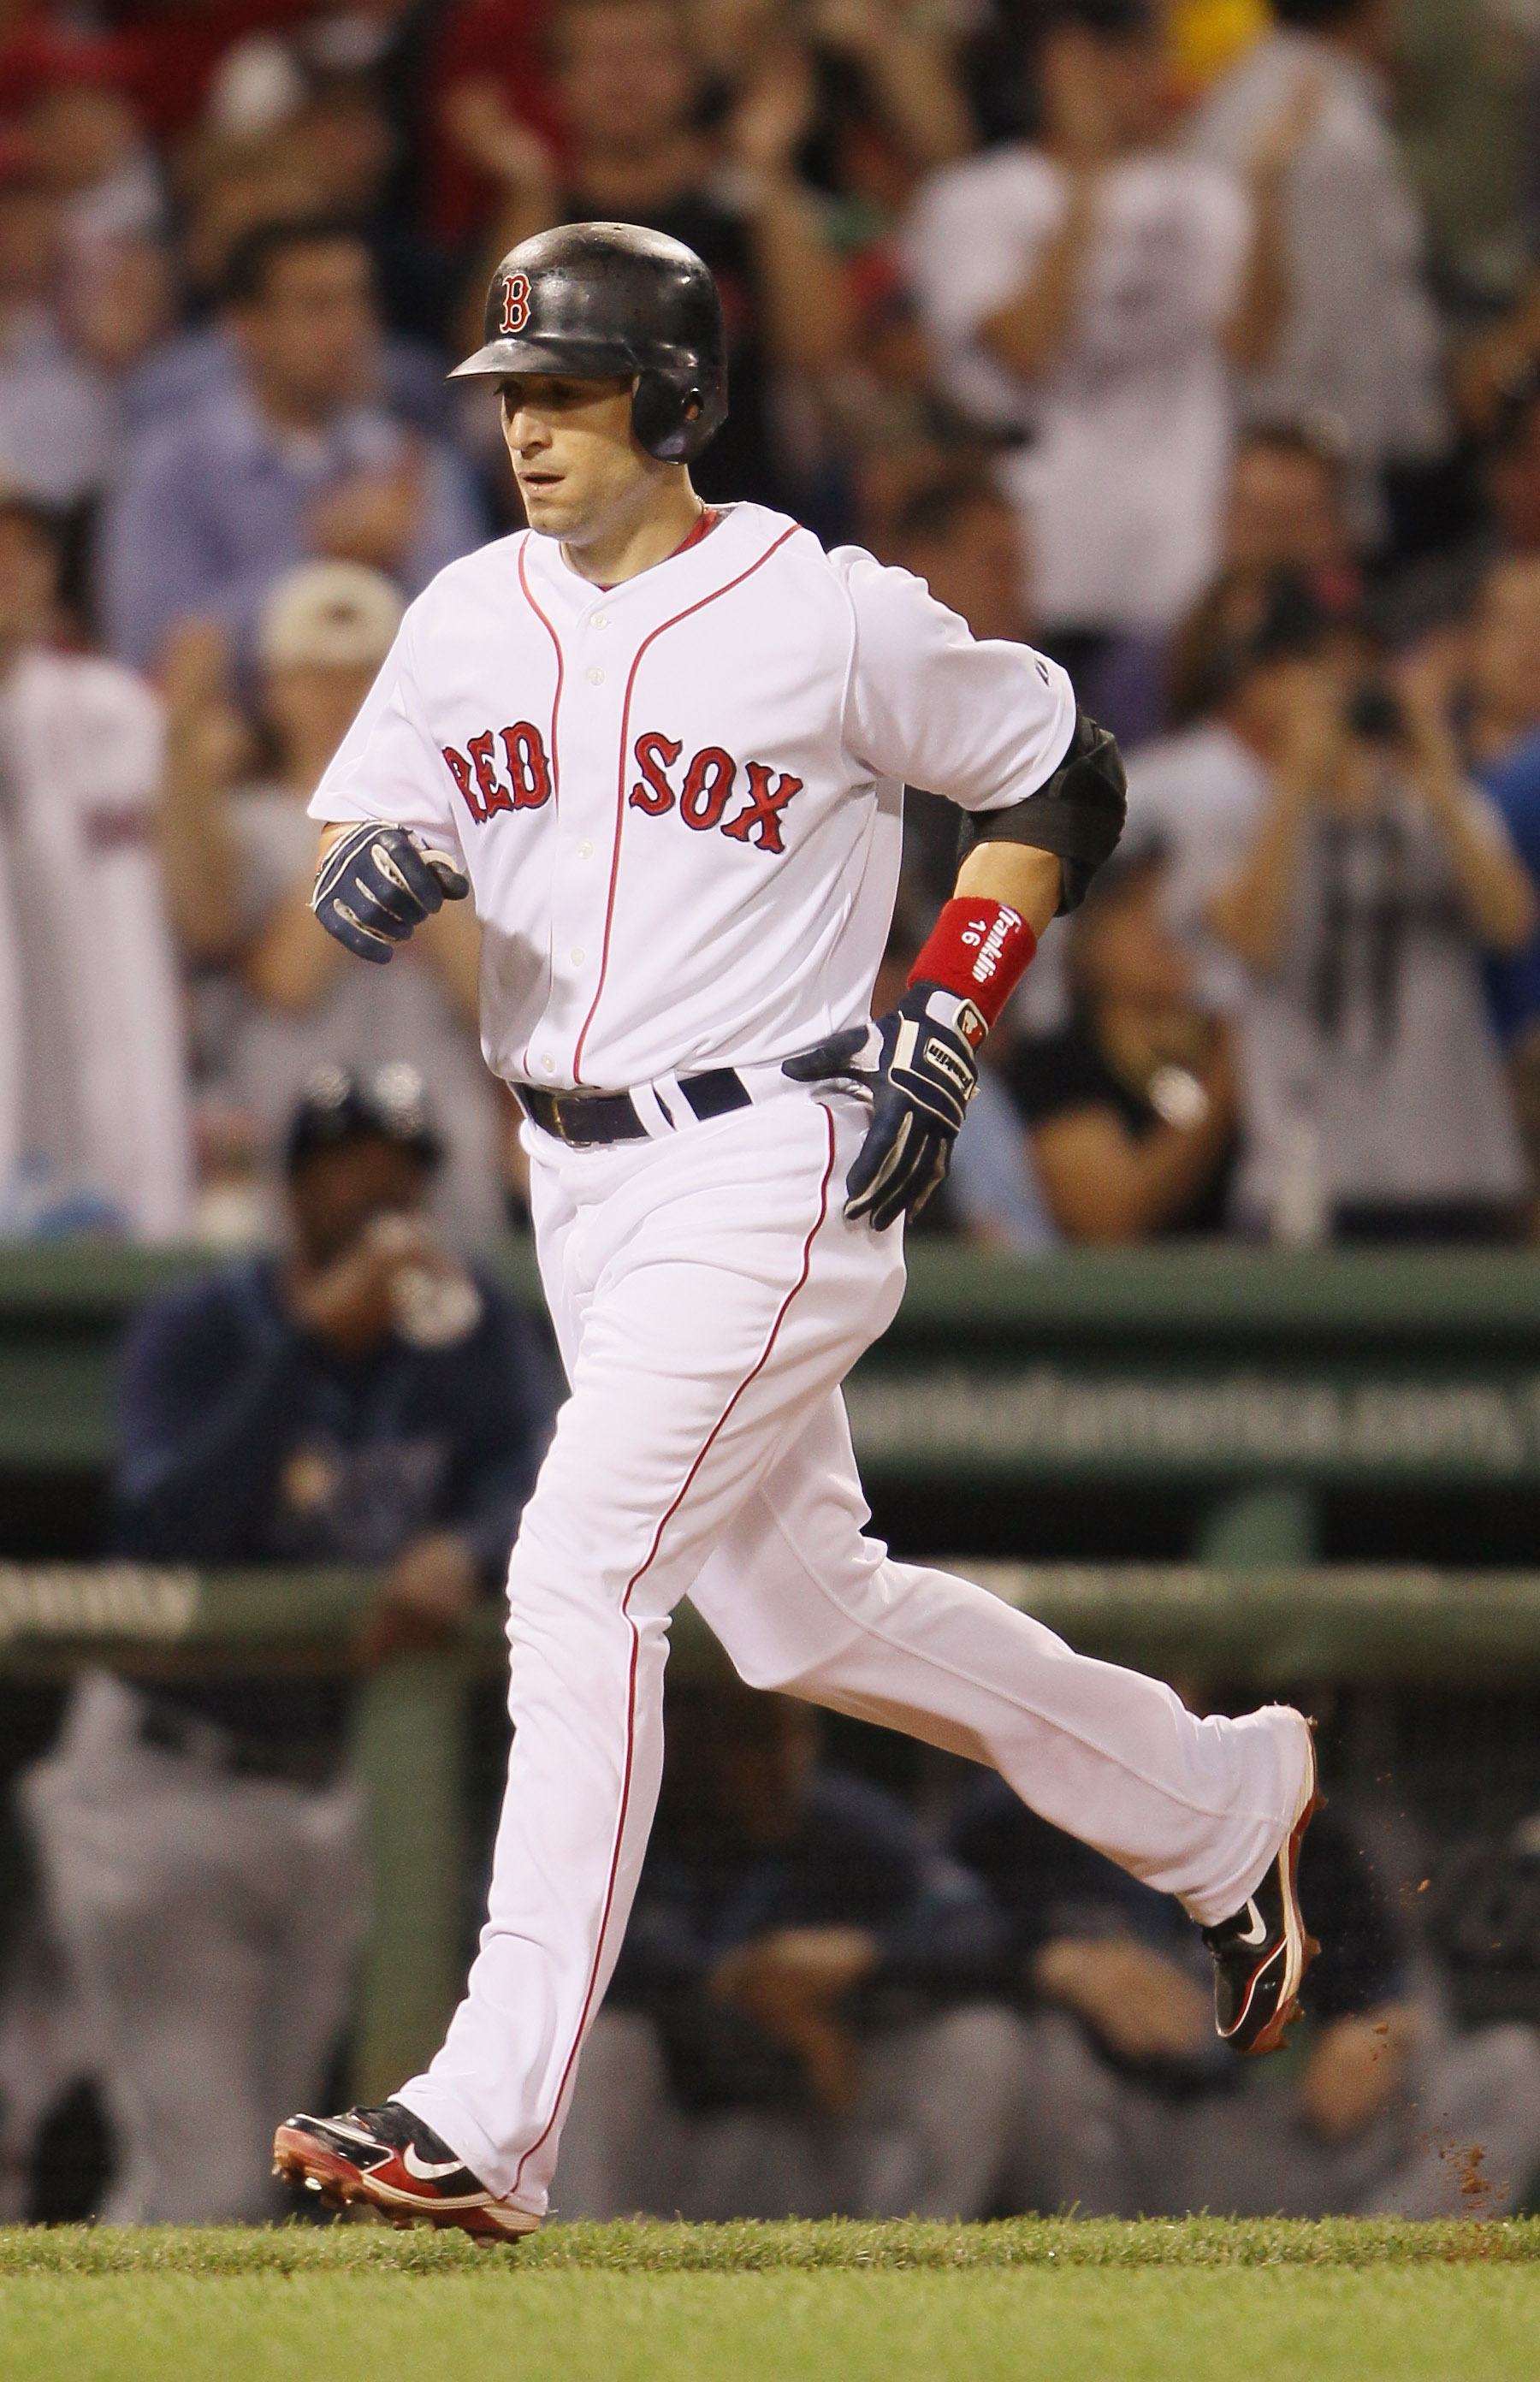 BOSTON - SEPTEMBER 08:  Marco Scutaro #16 of the Boston Red Sox heads for home after he hit a solo home run against the Tampa Bay Rays on September 8, 2010 at Fenway Park in Boston, Massachusetts.  (Photo by Elsa/Getty Images)